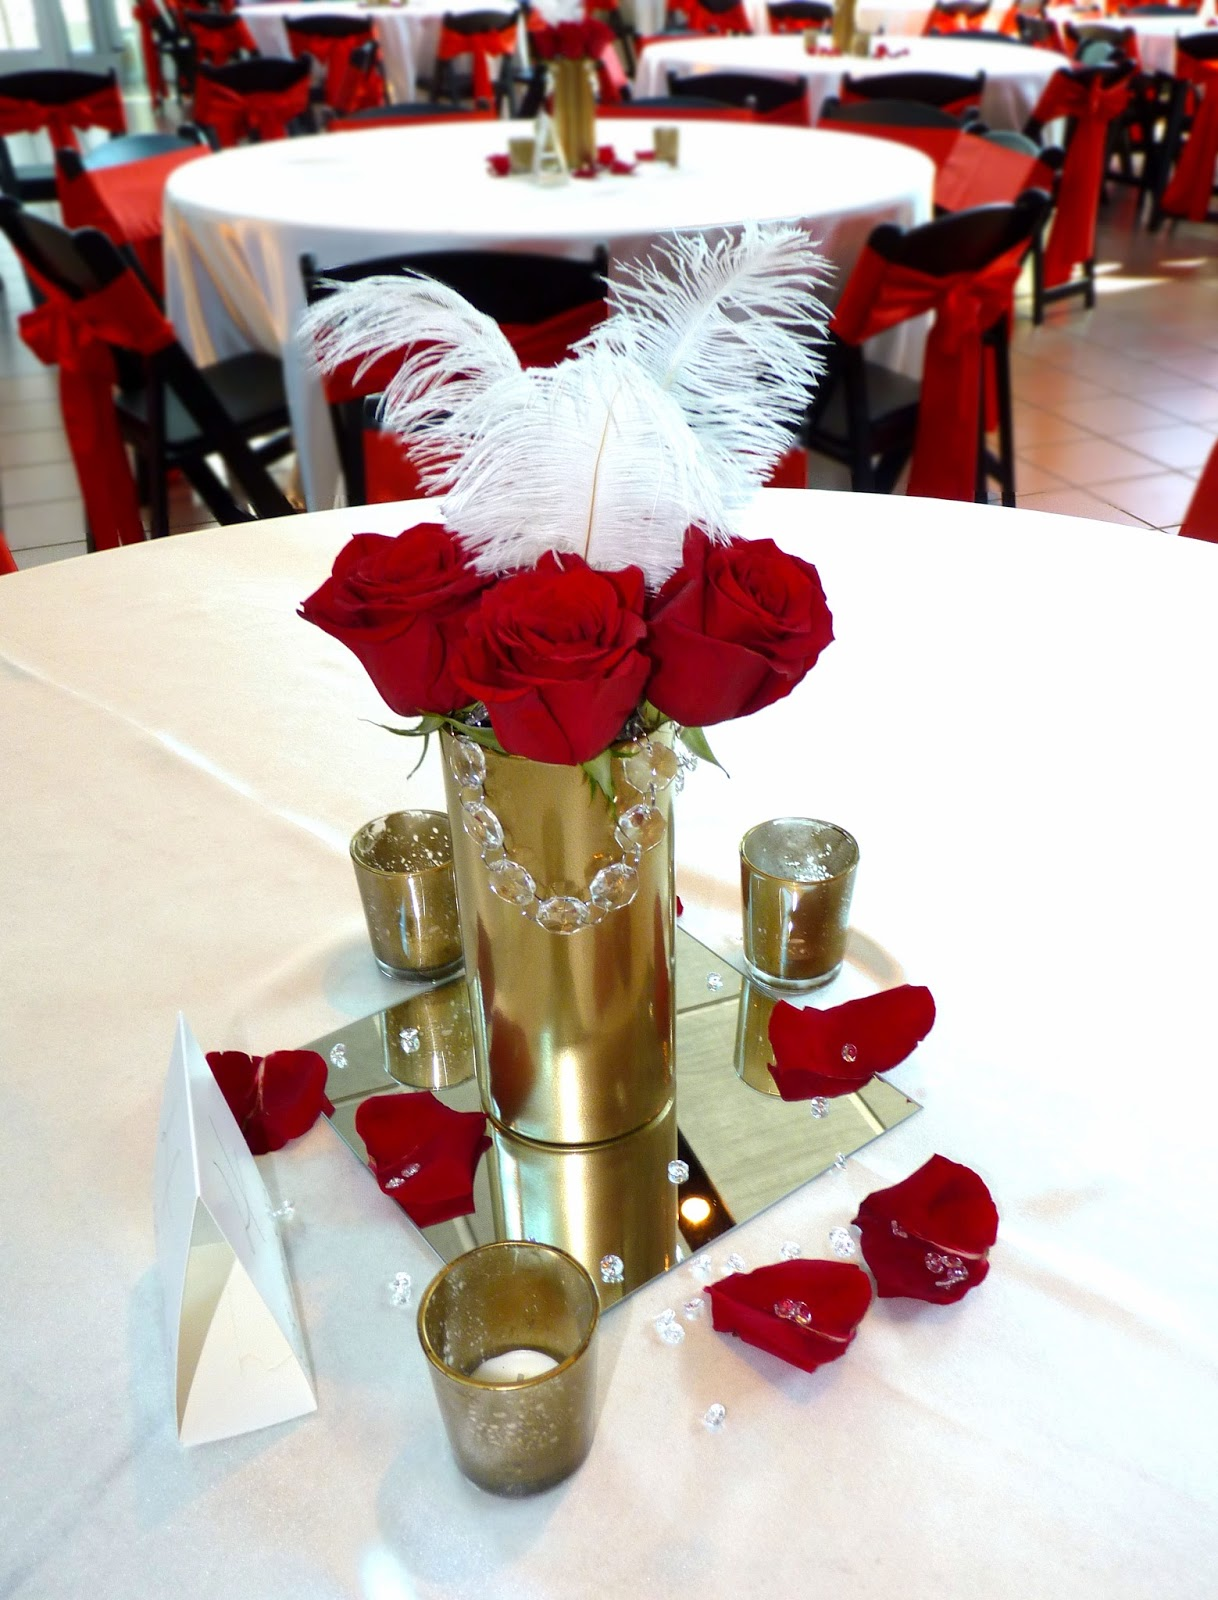 We Finished The Tables Off With 3 Gold Mercury Glass Votives And Sprinkles Of Red Petals Diamond Jewels